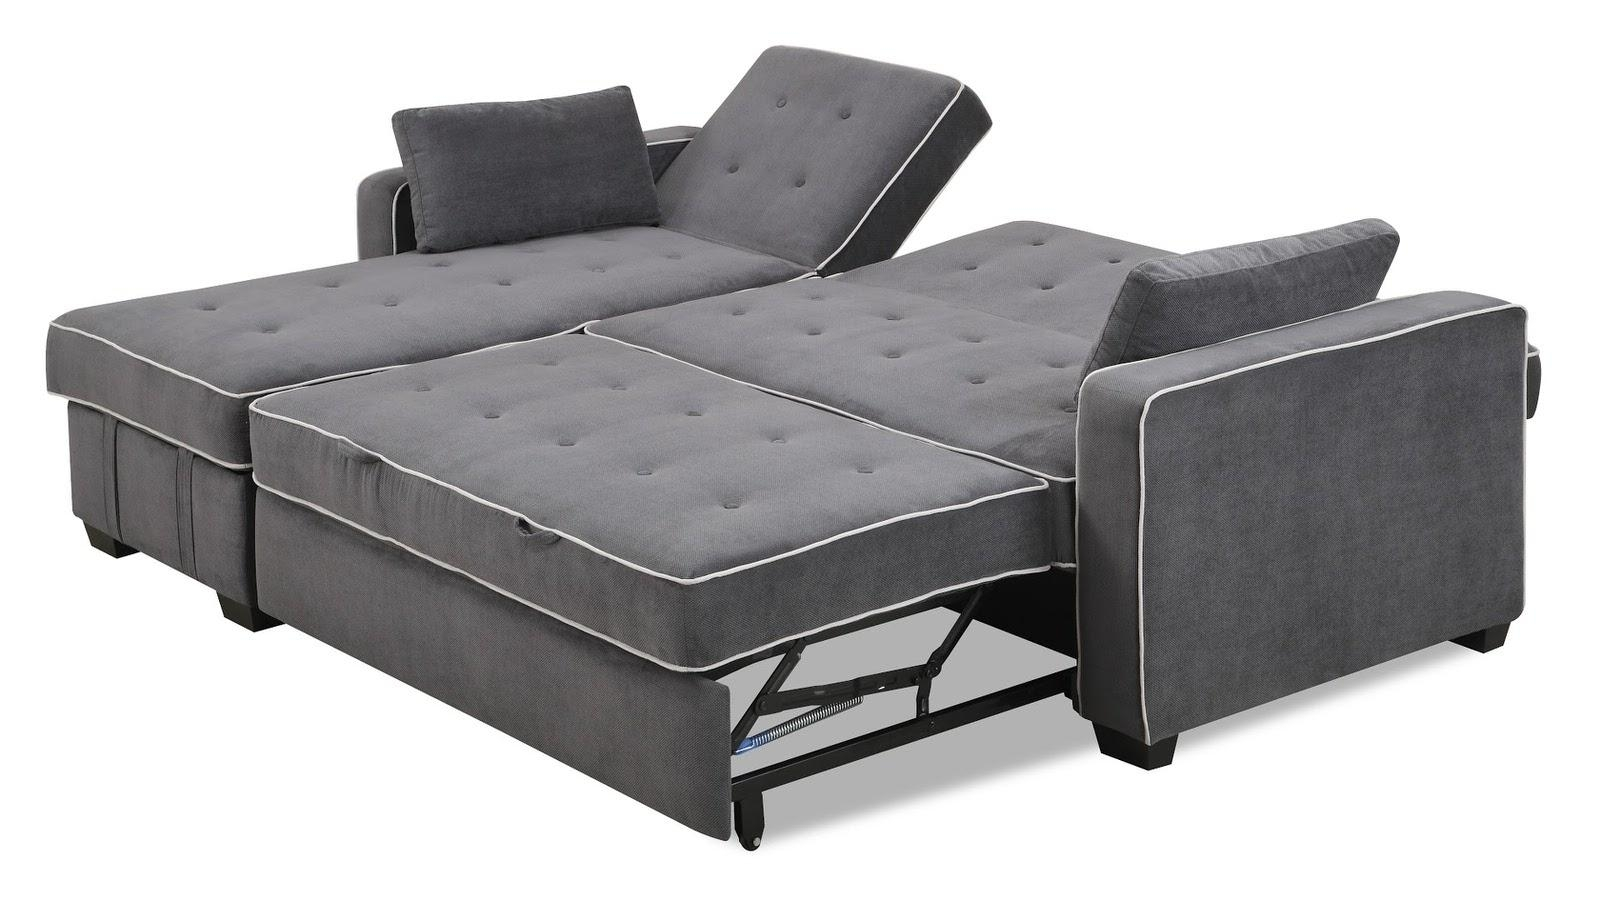 King Size Sofa Bed 25 With King Size Sofa Bed | Jinanhongyu For King Size Sofa Beds (Image 9 of 20)